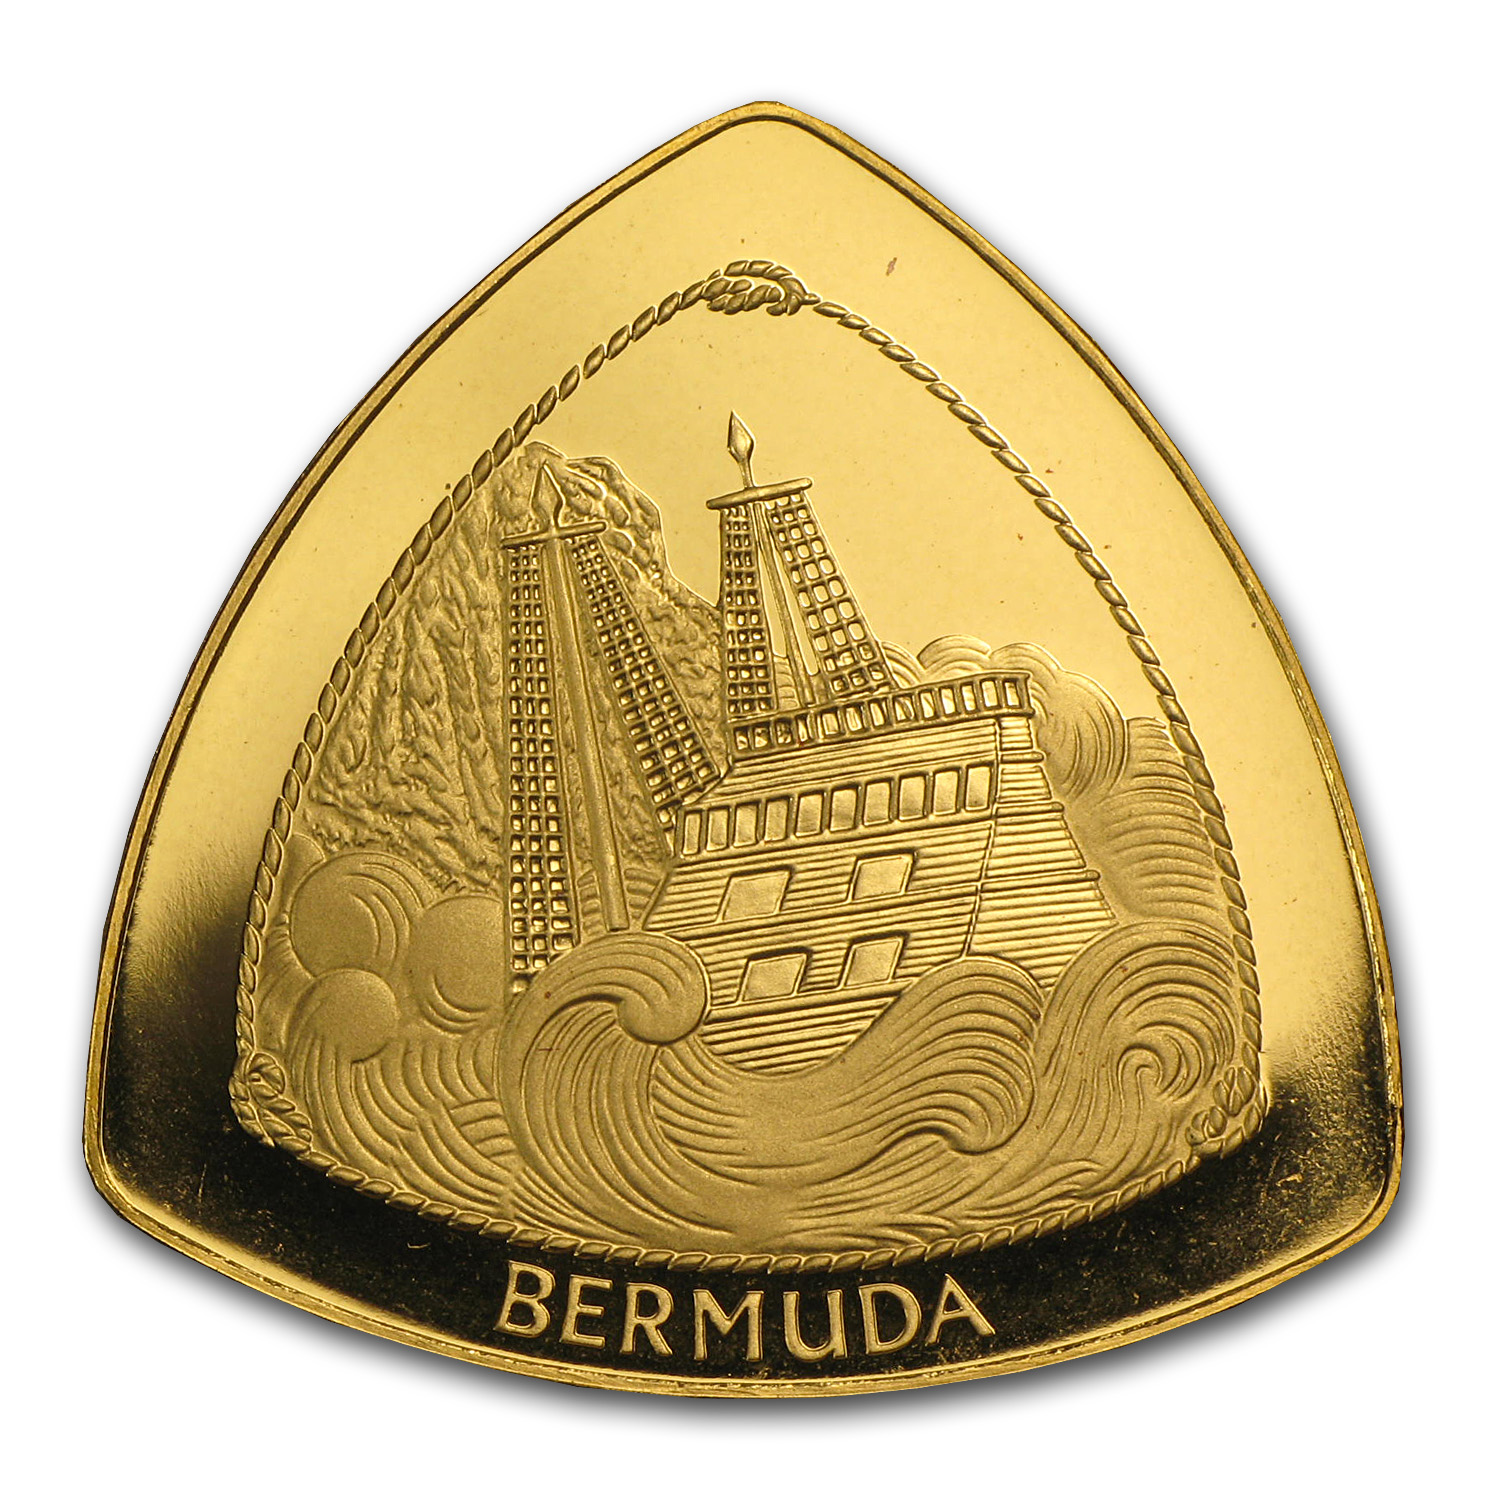 1997 Bermuda 1/2 oz Proof Gold $30 Triangle Shape